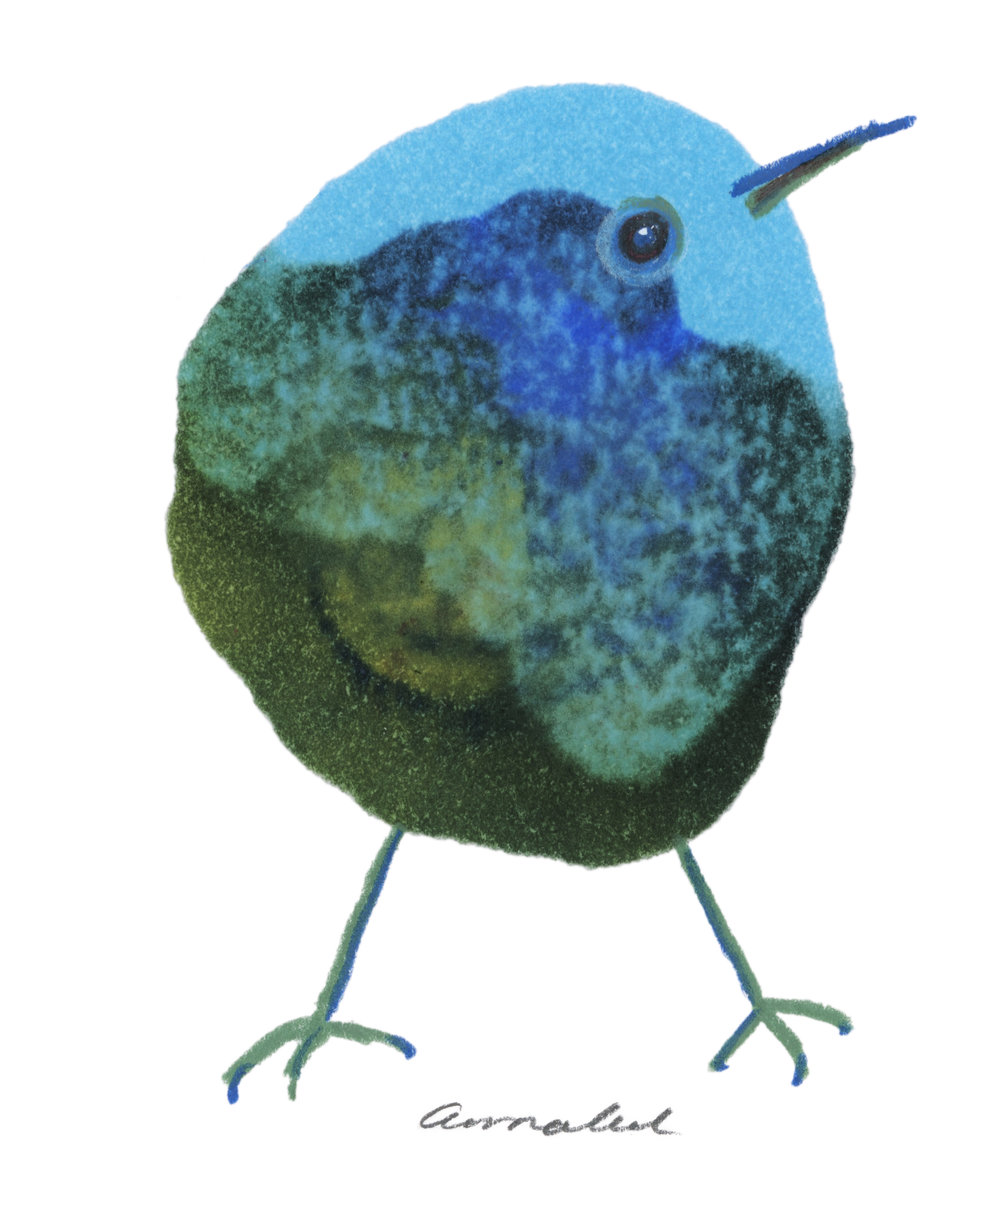 Inkdrop birds - This newest project showcases the artists love for birds, paper and colour.